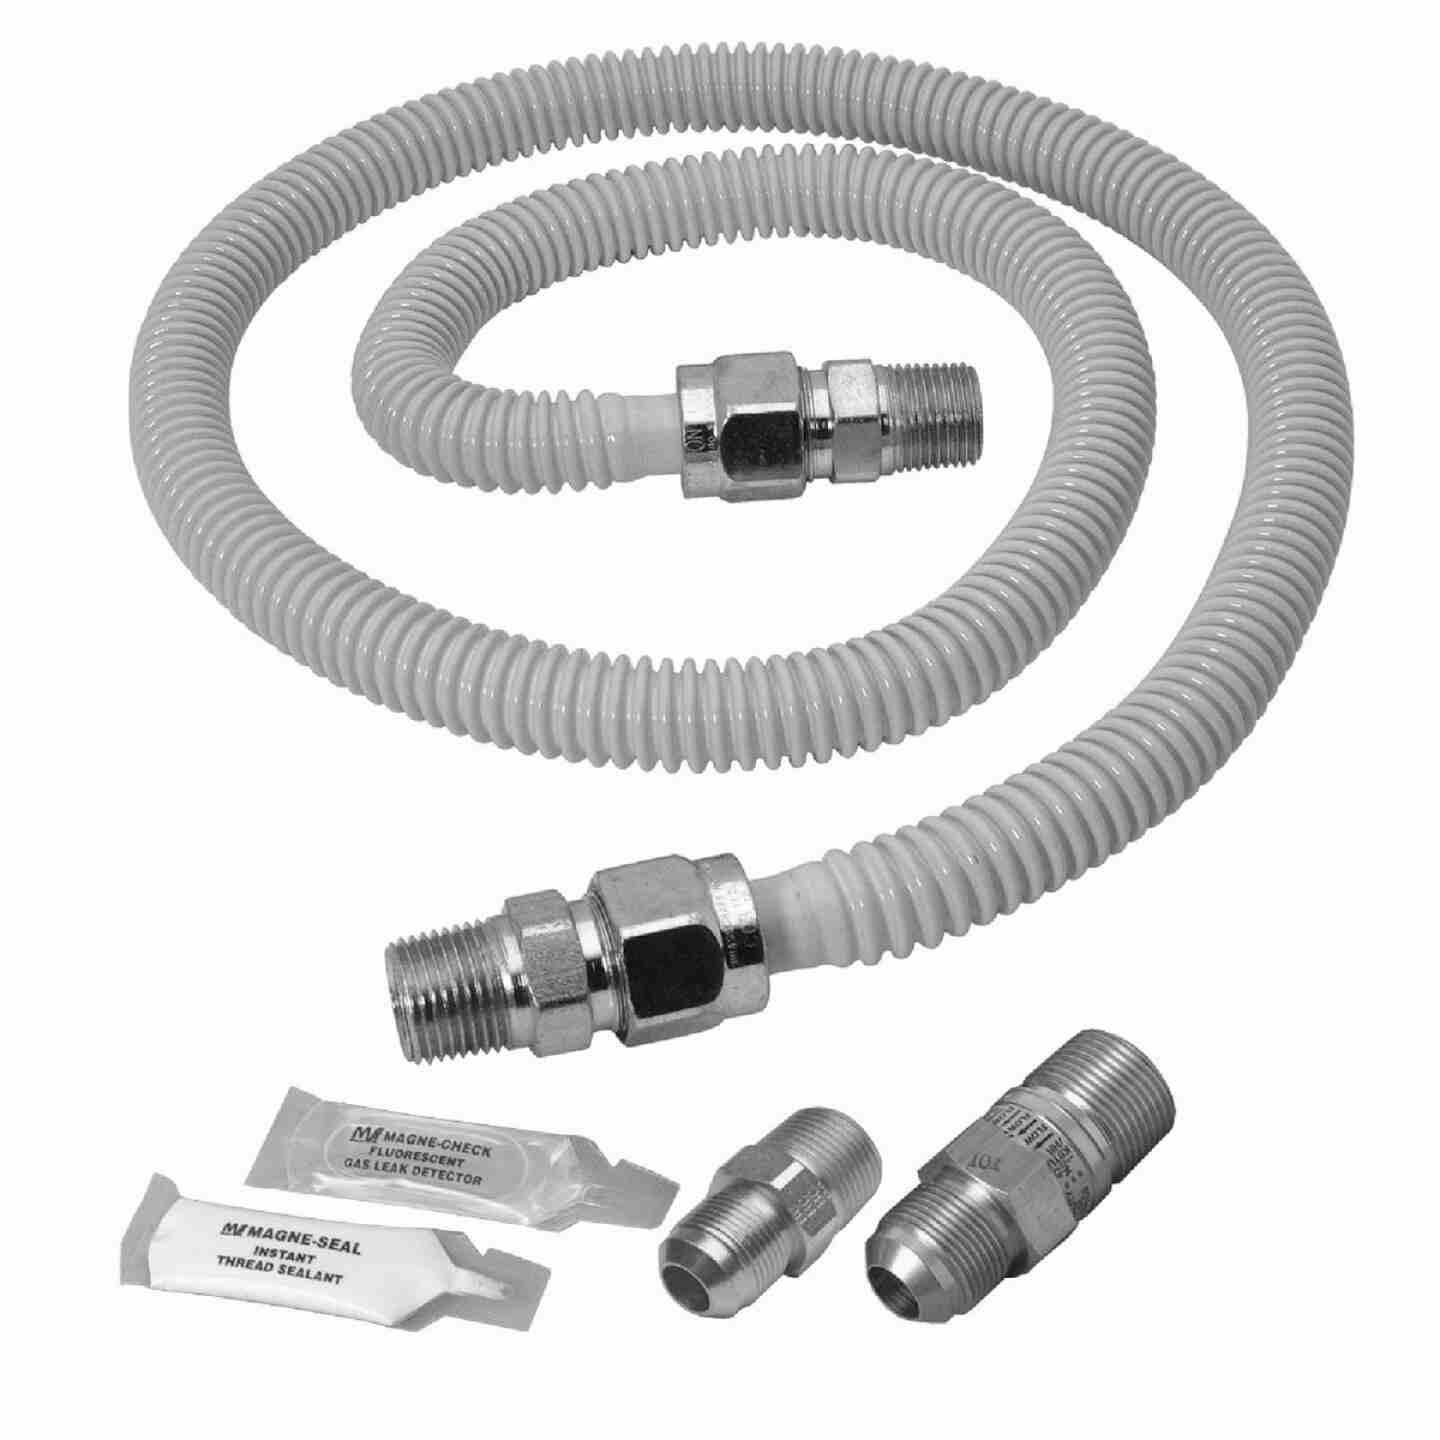 Dormont 5/8 In. OD x 48 In. Coated Stainless Steel Gas Connector Range Kit, 1/2 In. MIP (Tapped 3/8 In. FIP) x 1/2 In. MIP SmartSense Image 1